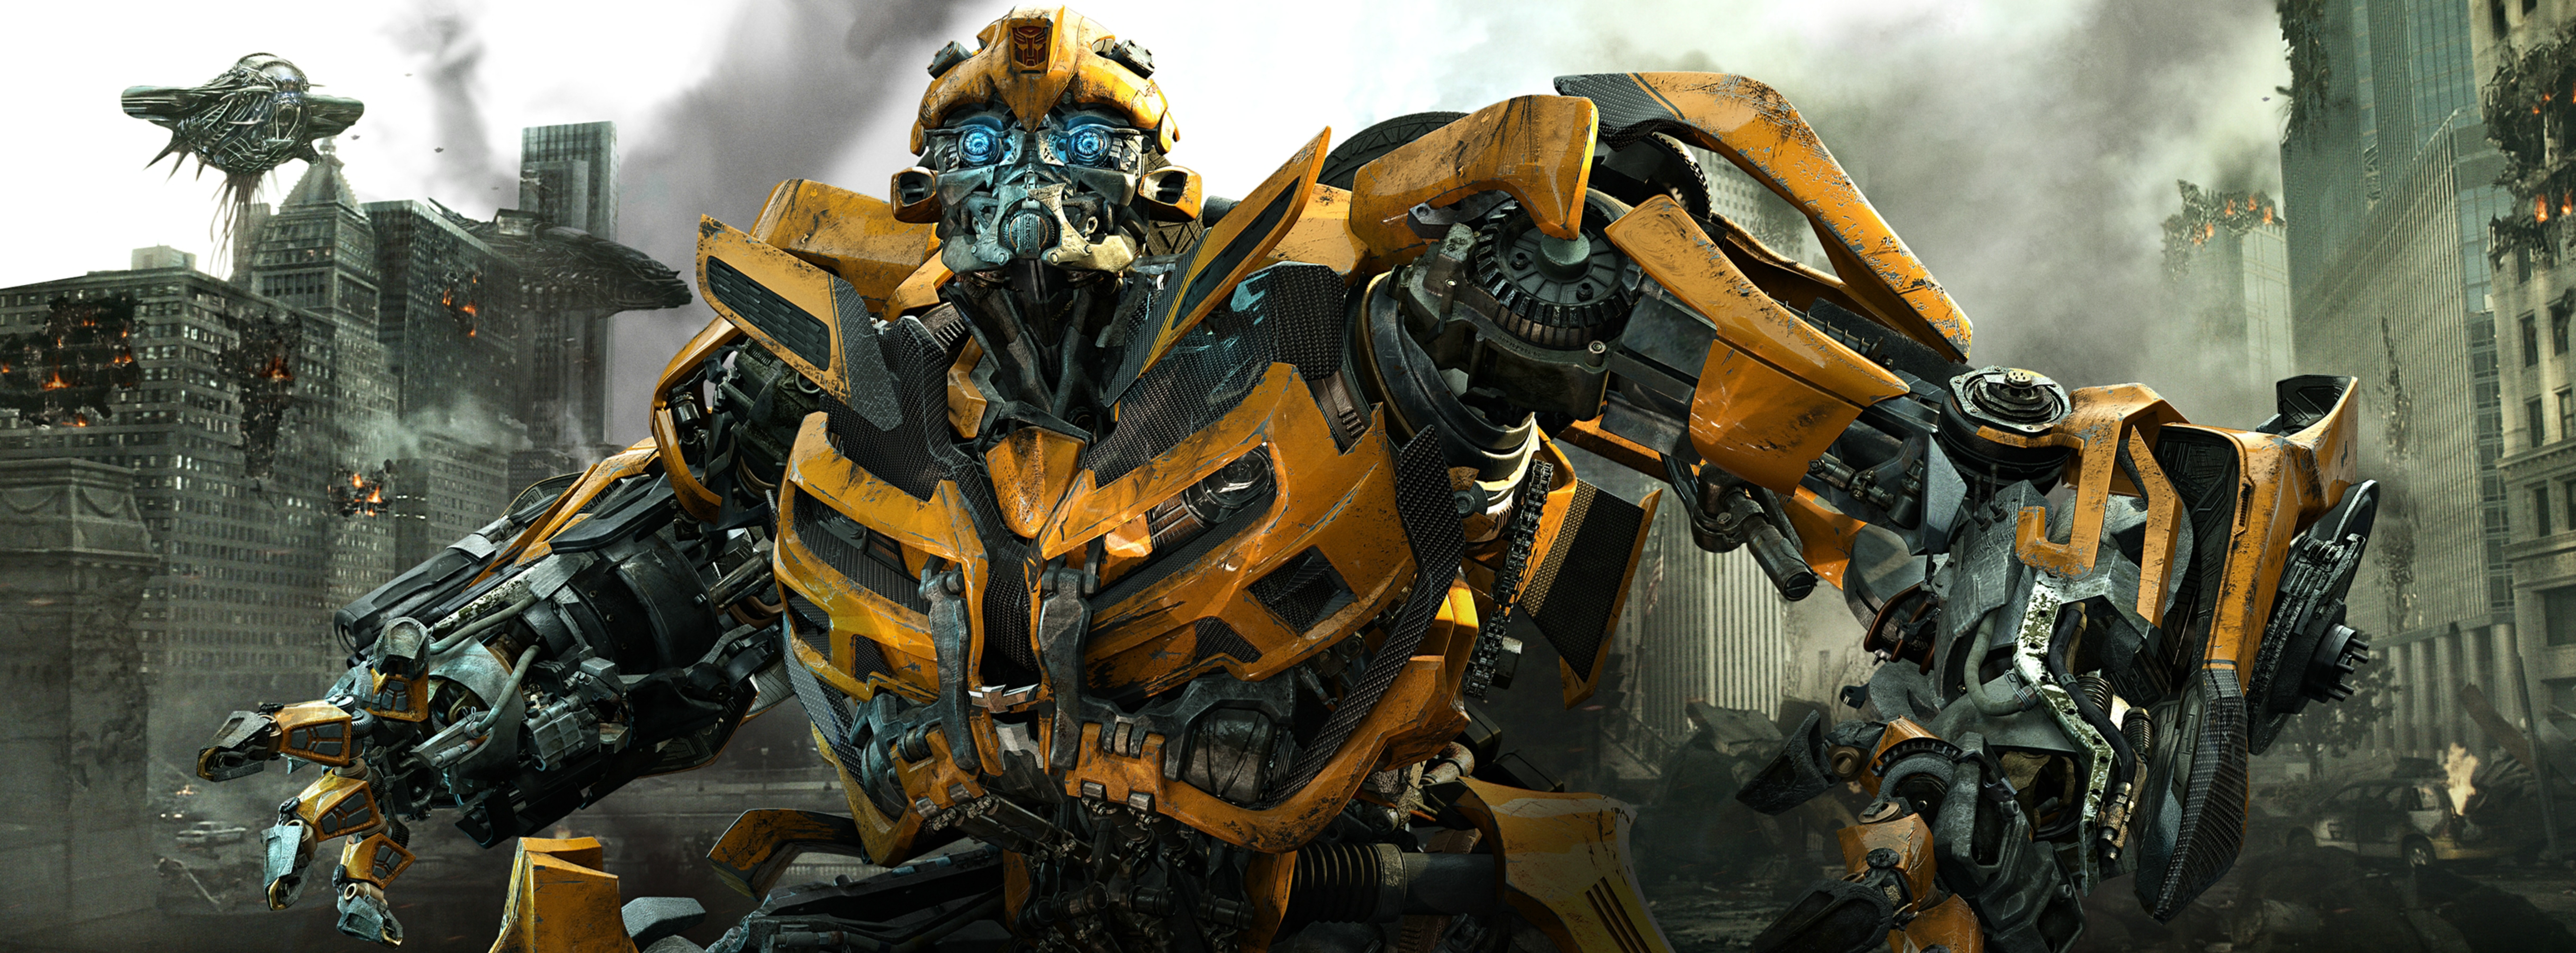 """In the michael bay action film """"transformers dark of the moon"""